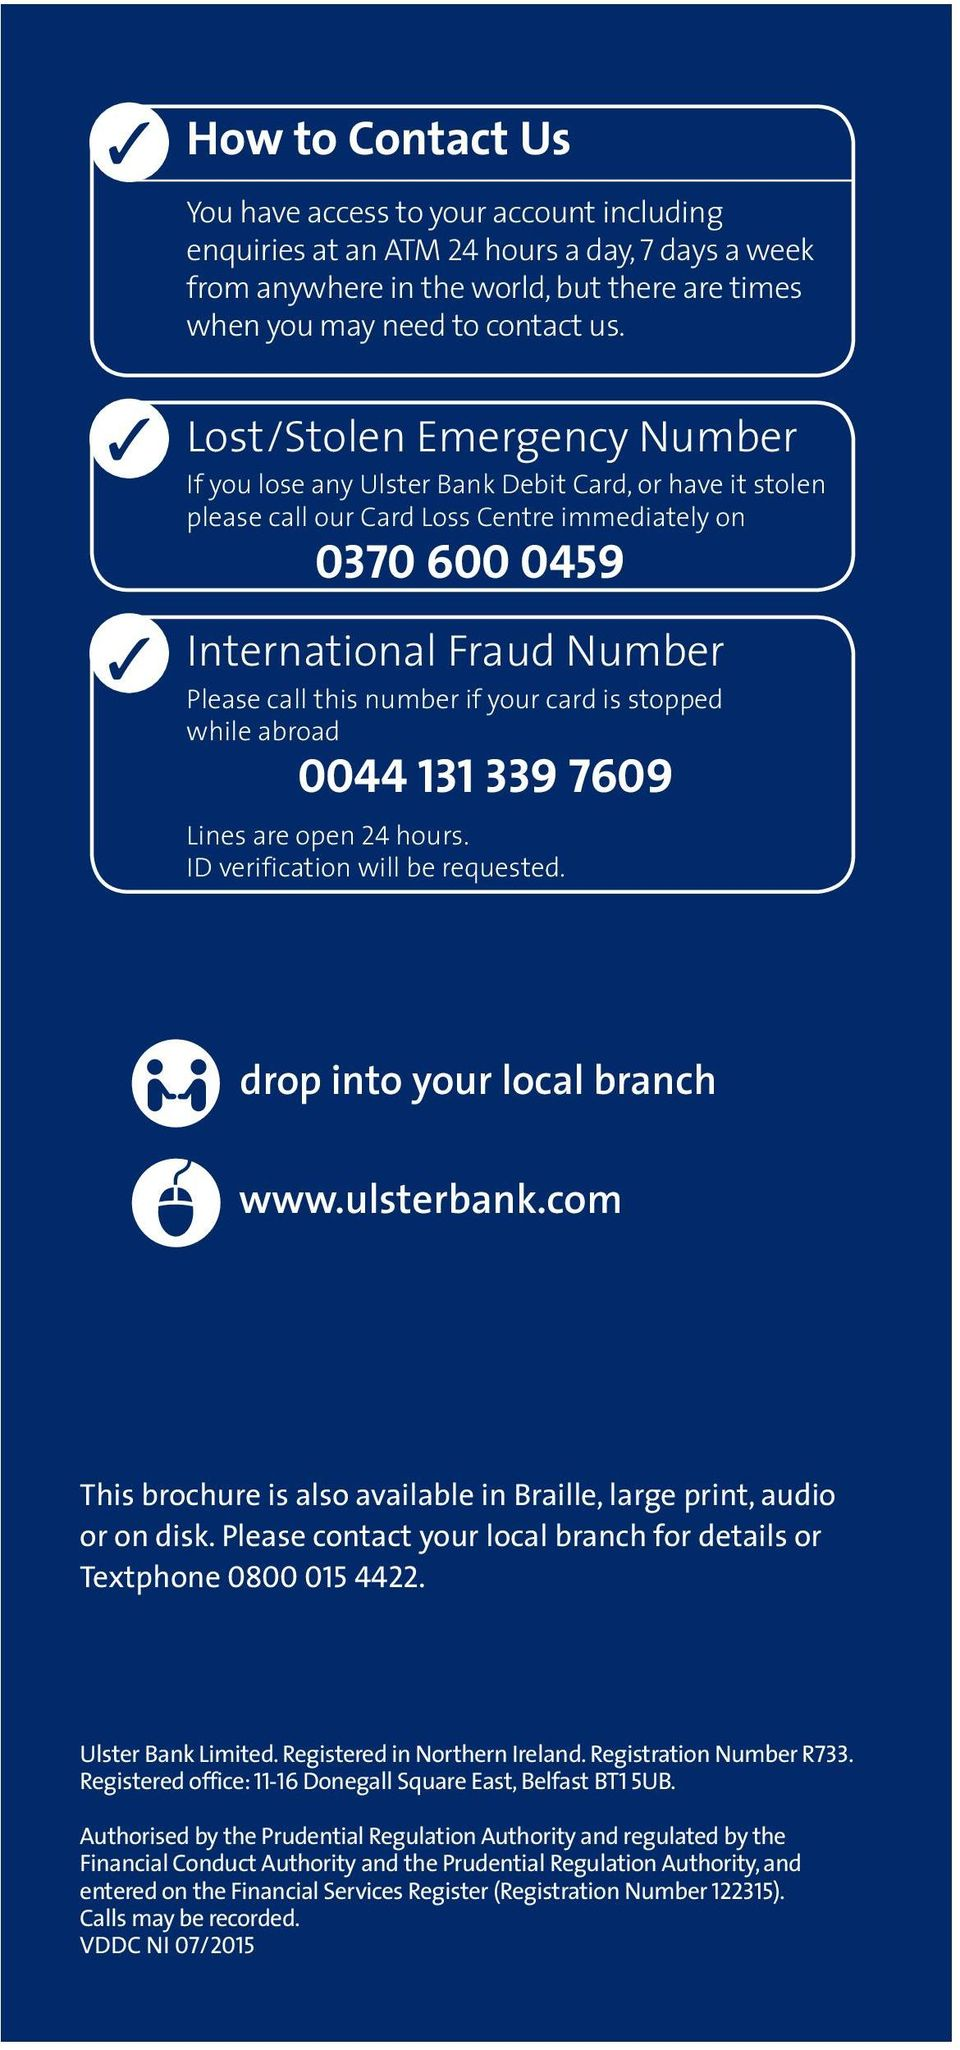 if your card is stopped while abroad 0044 131 339 7609 Lines are open 24 hours. ID verification will be requested. drop into your local branch www.ulsterbank.